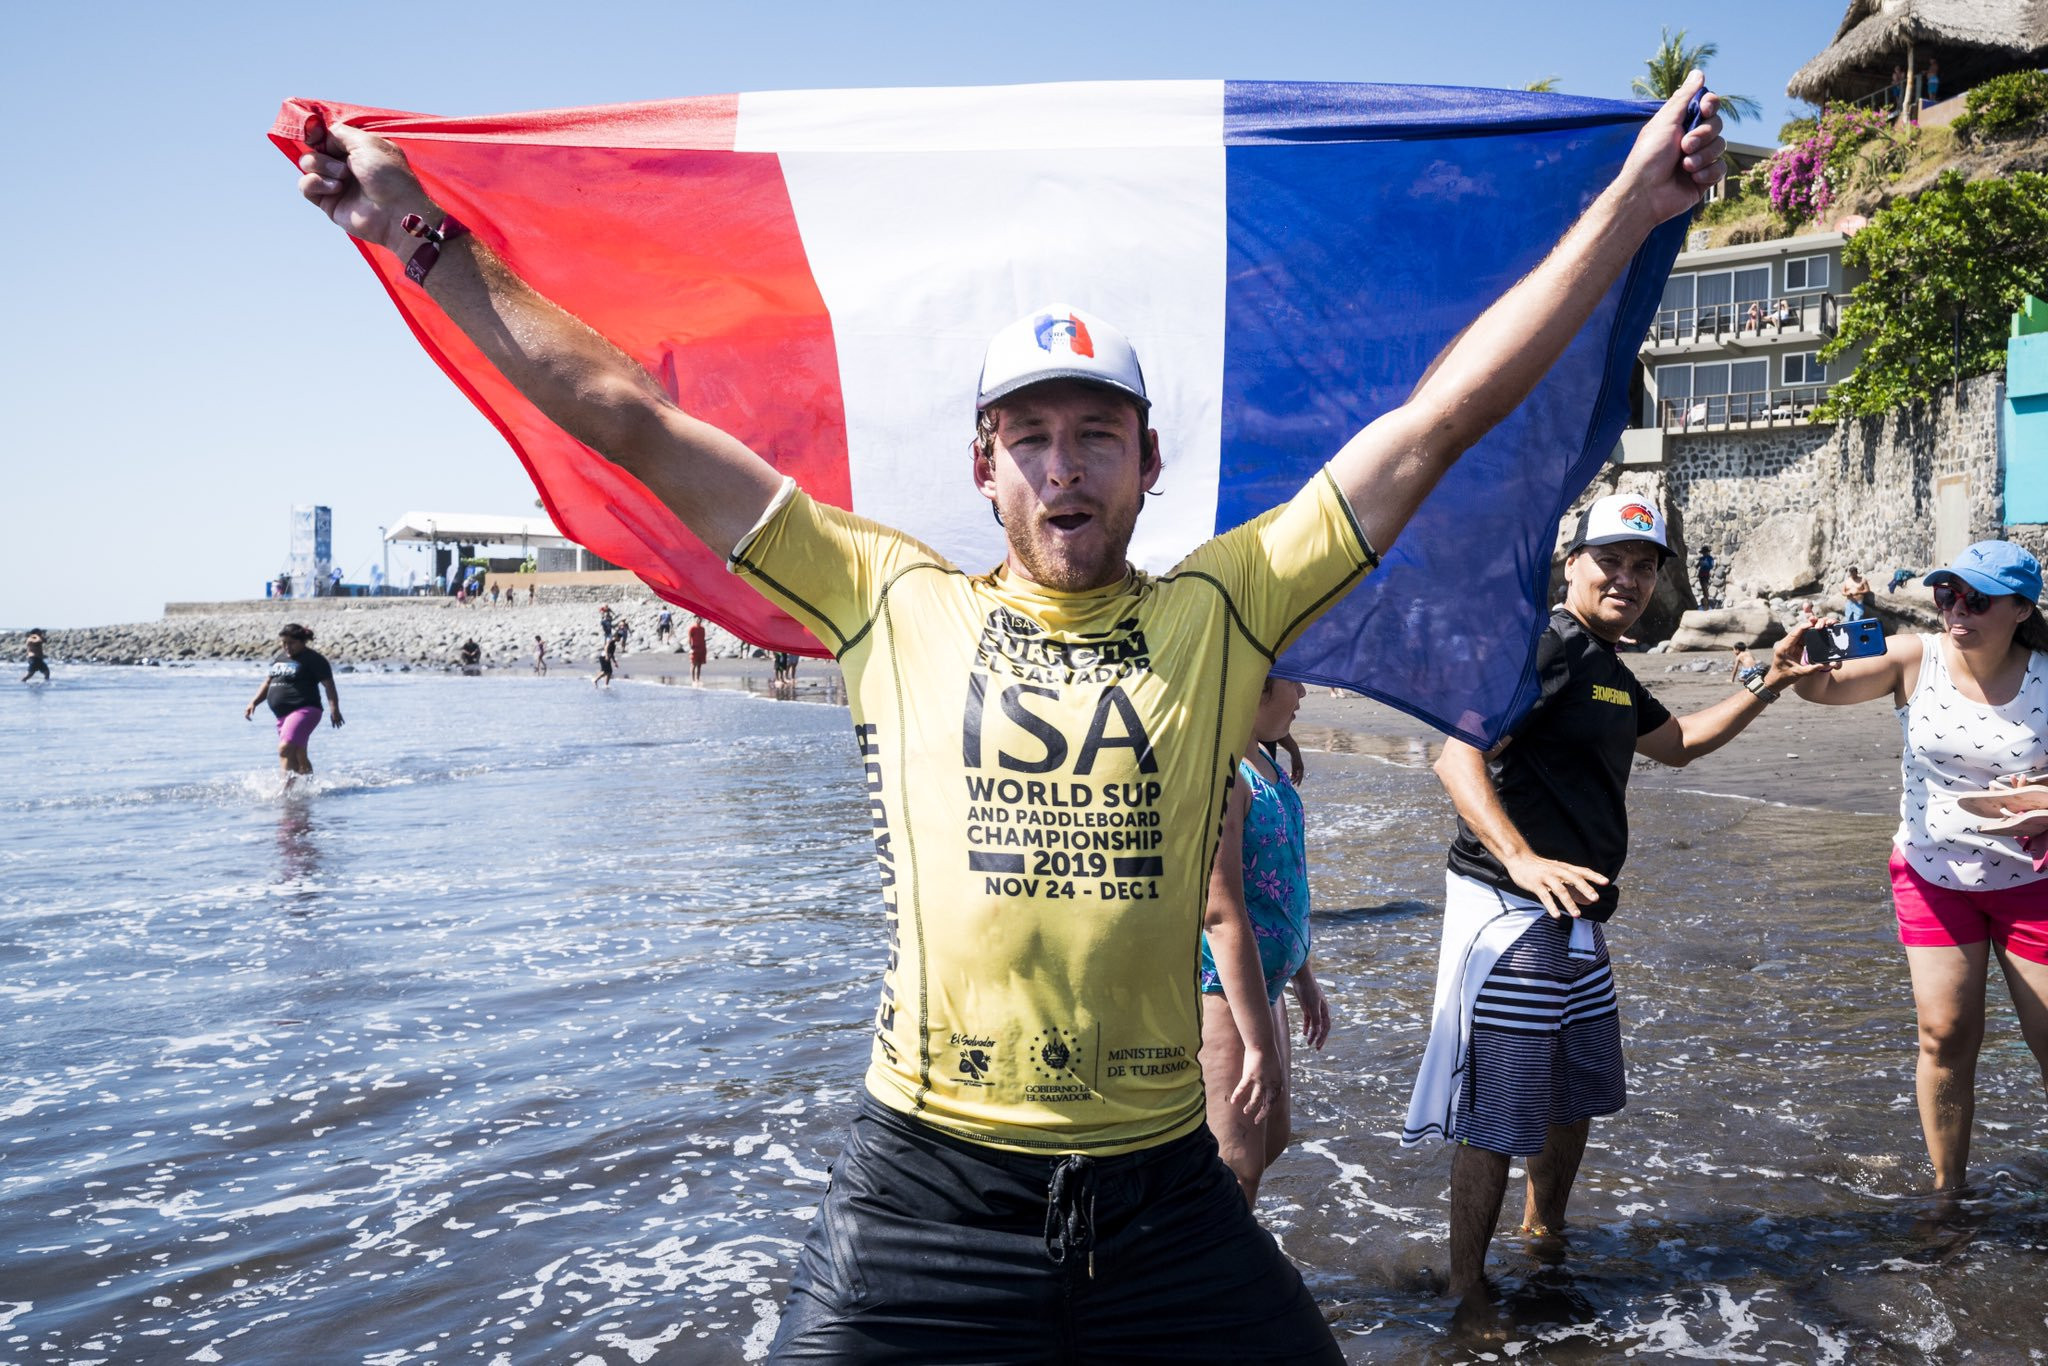 Benoit Carpentier of France secured the men's SUP surf title with an 8.90 wave in the final minute ©ISA